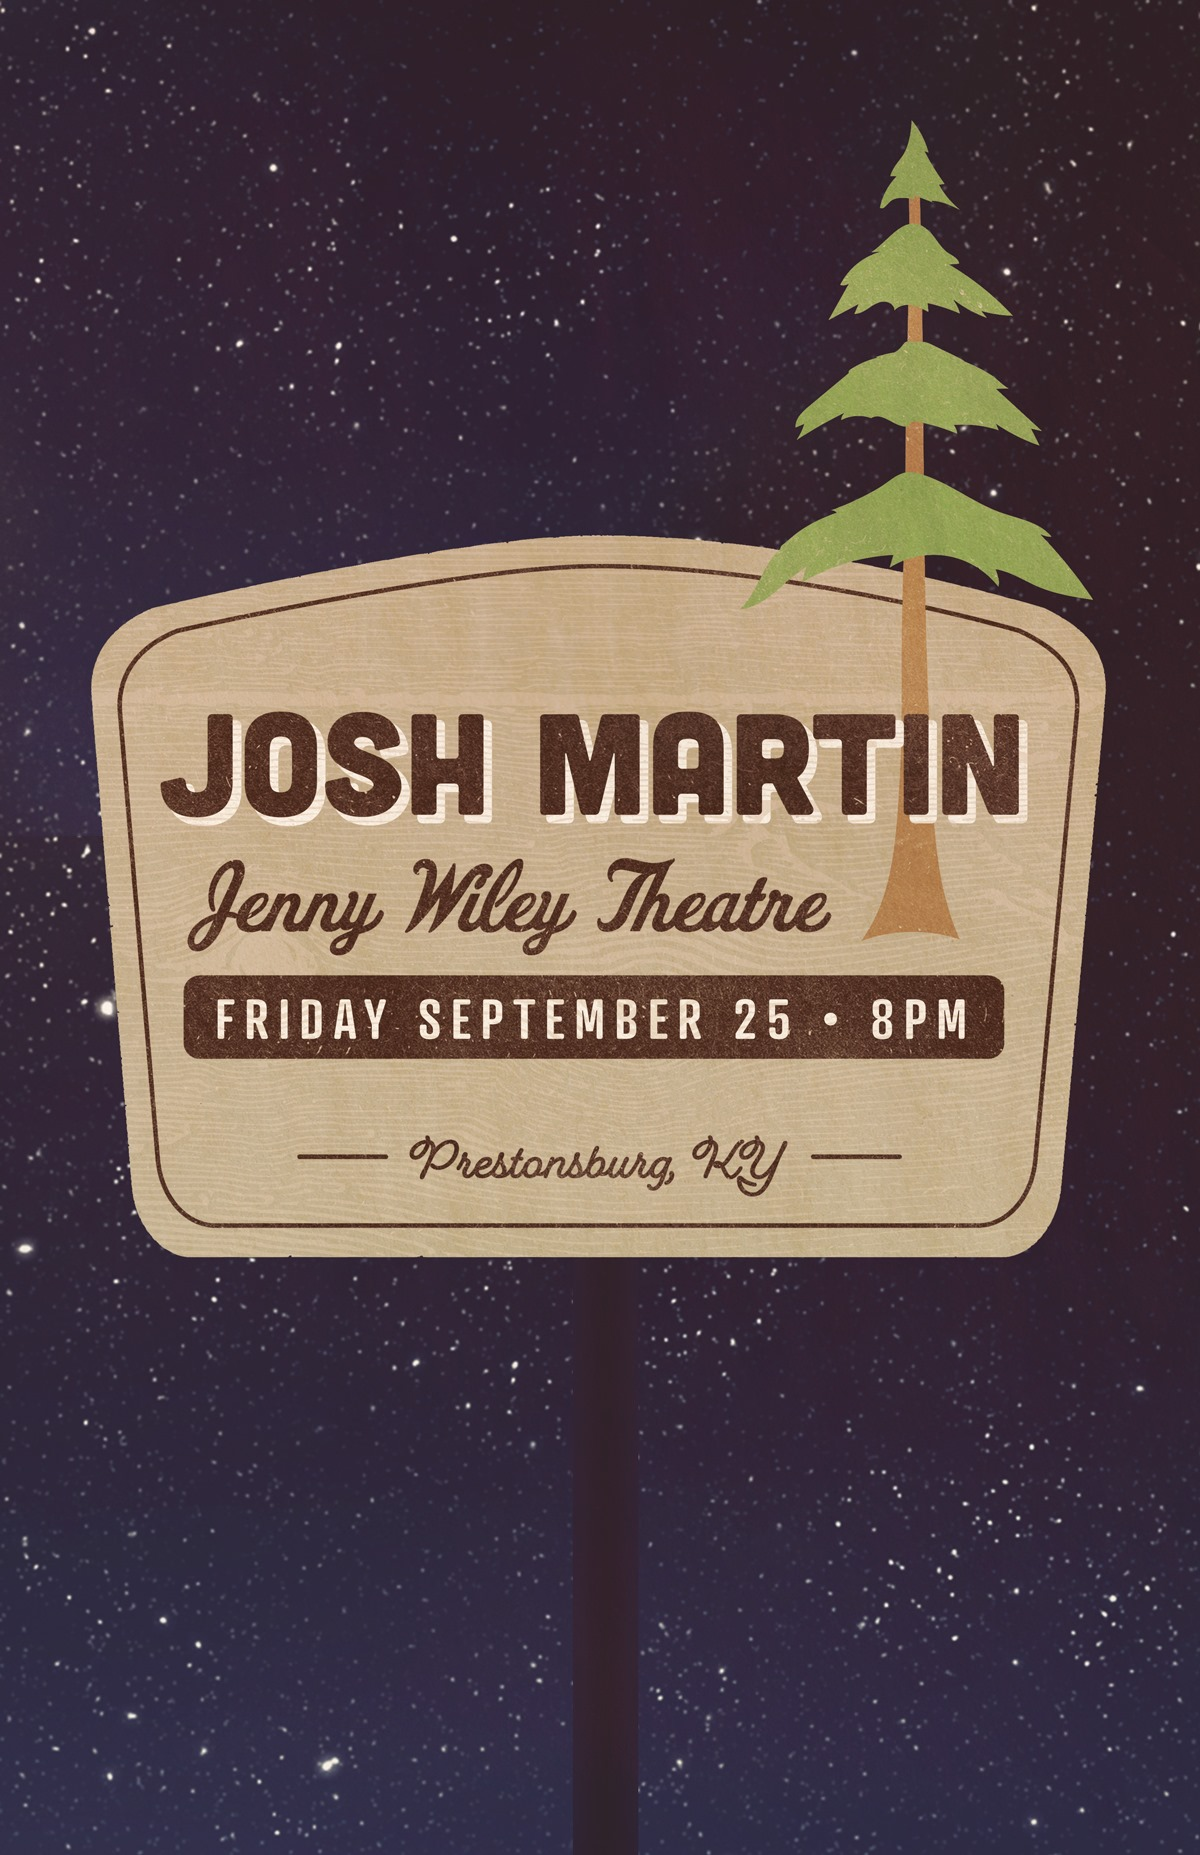 Josh Martin sign with trees and night sky